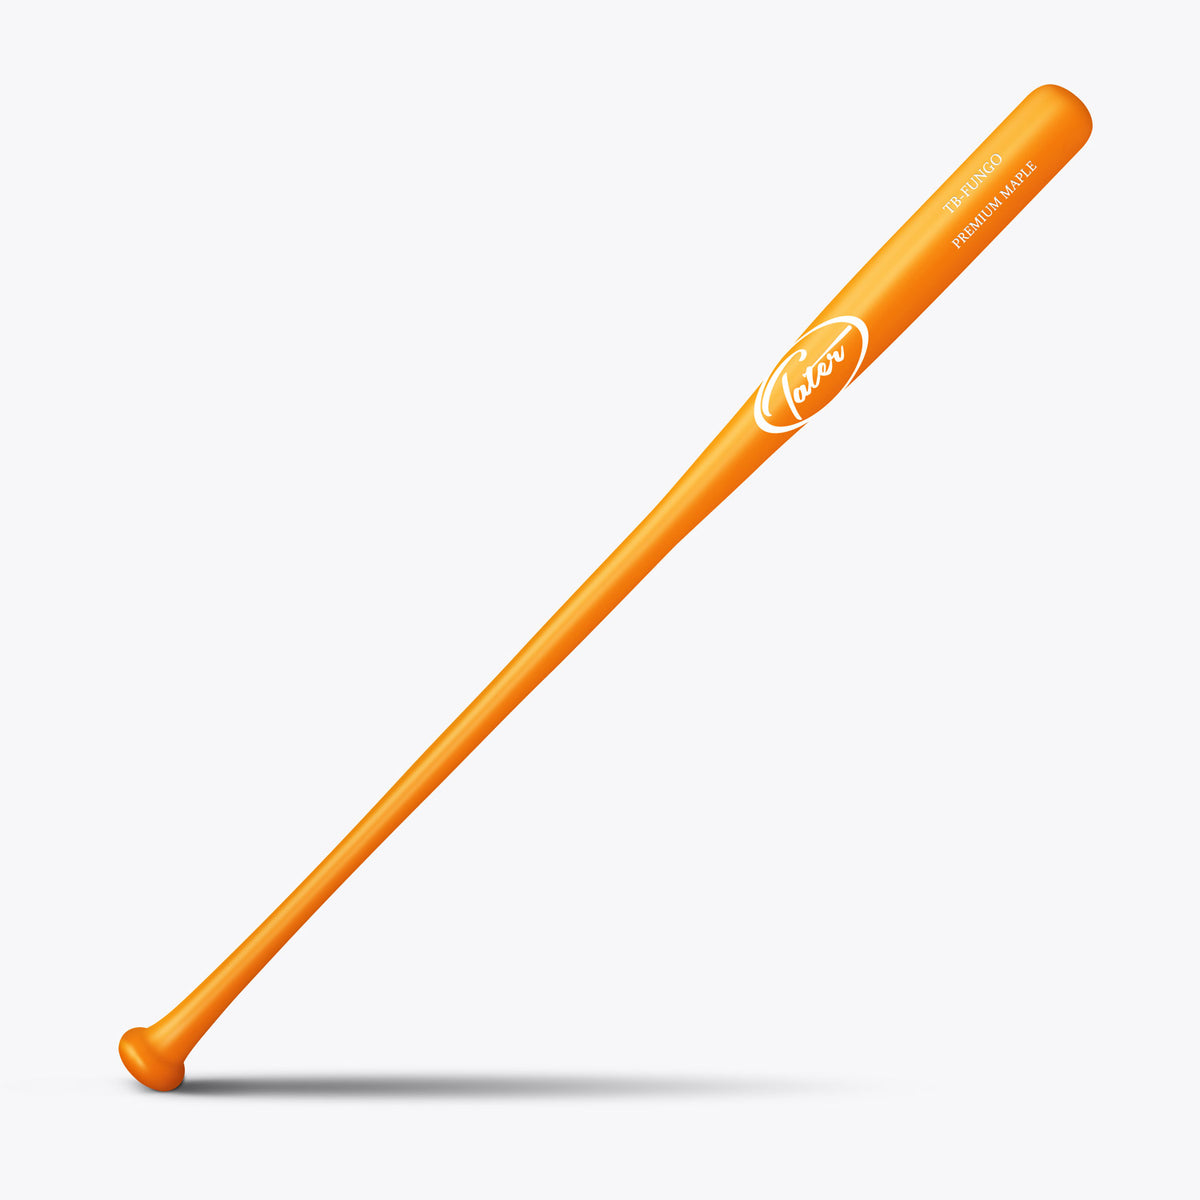 Premium Finish Maple Fungo (Thin Barrel) - Tater Bats - Professional Wood Baseball Bats